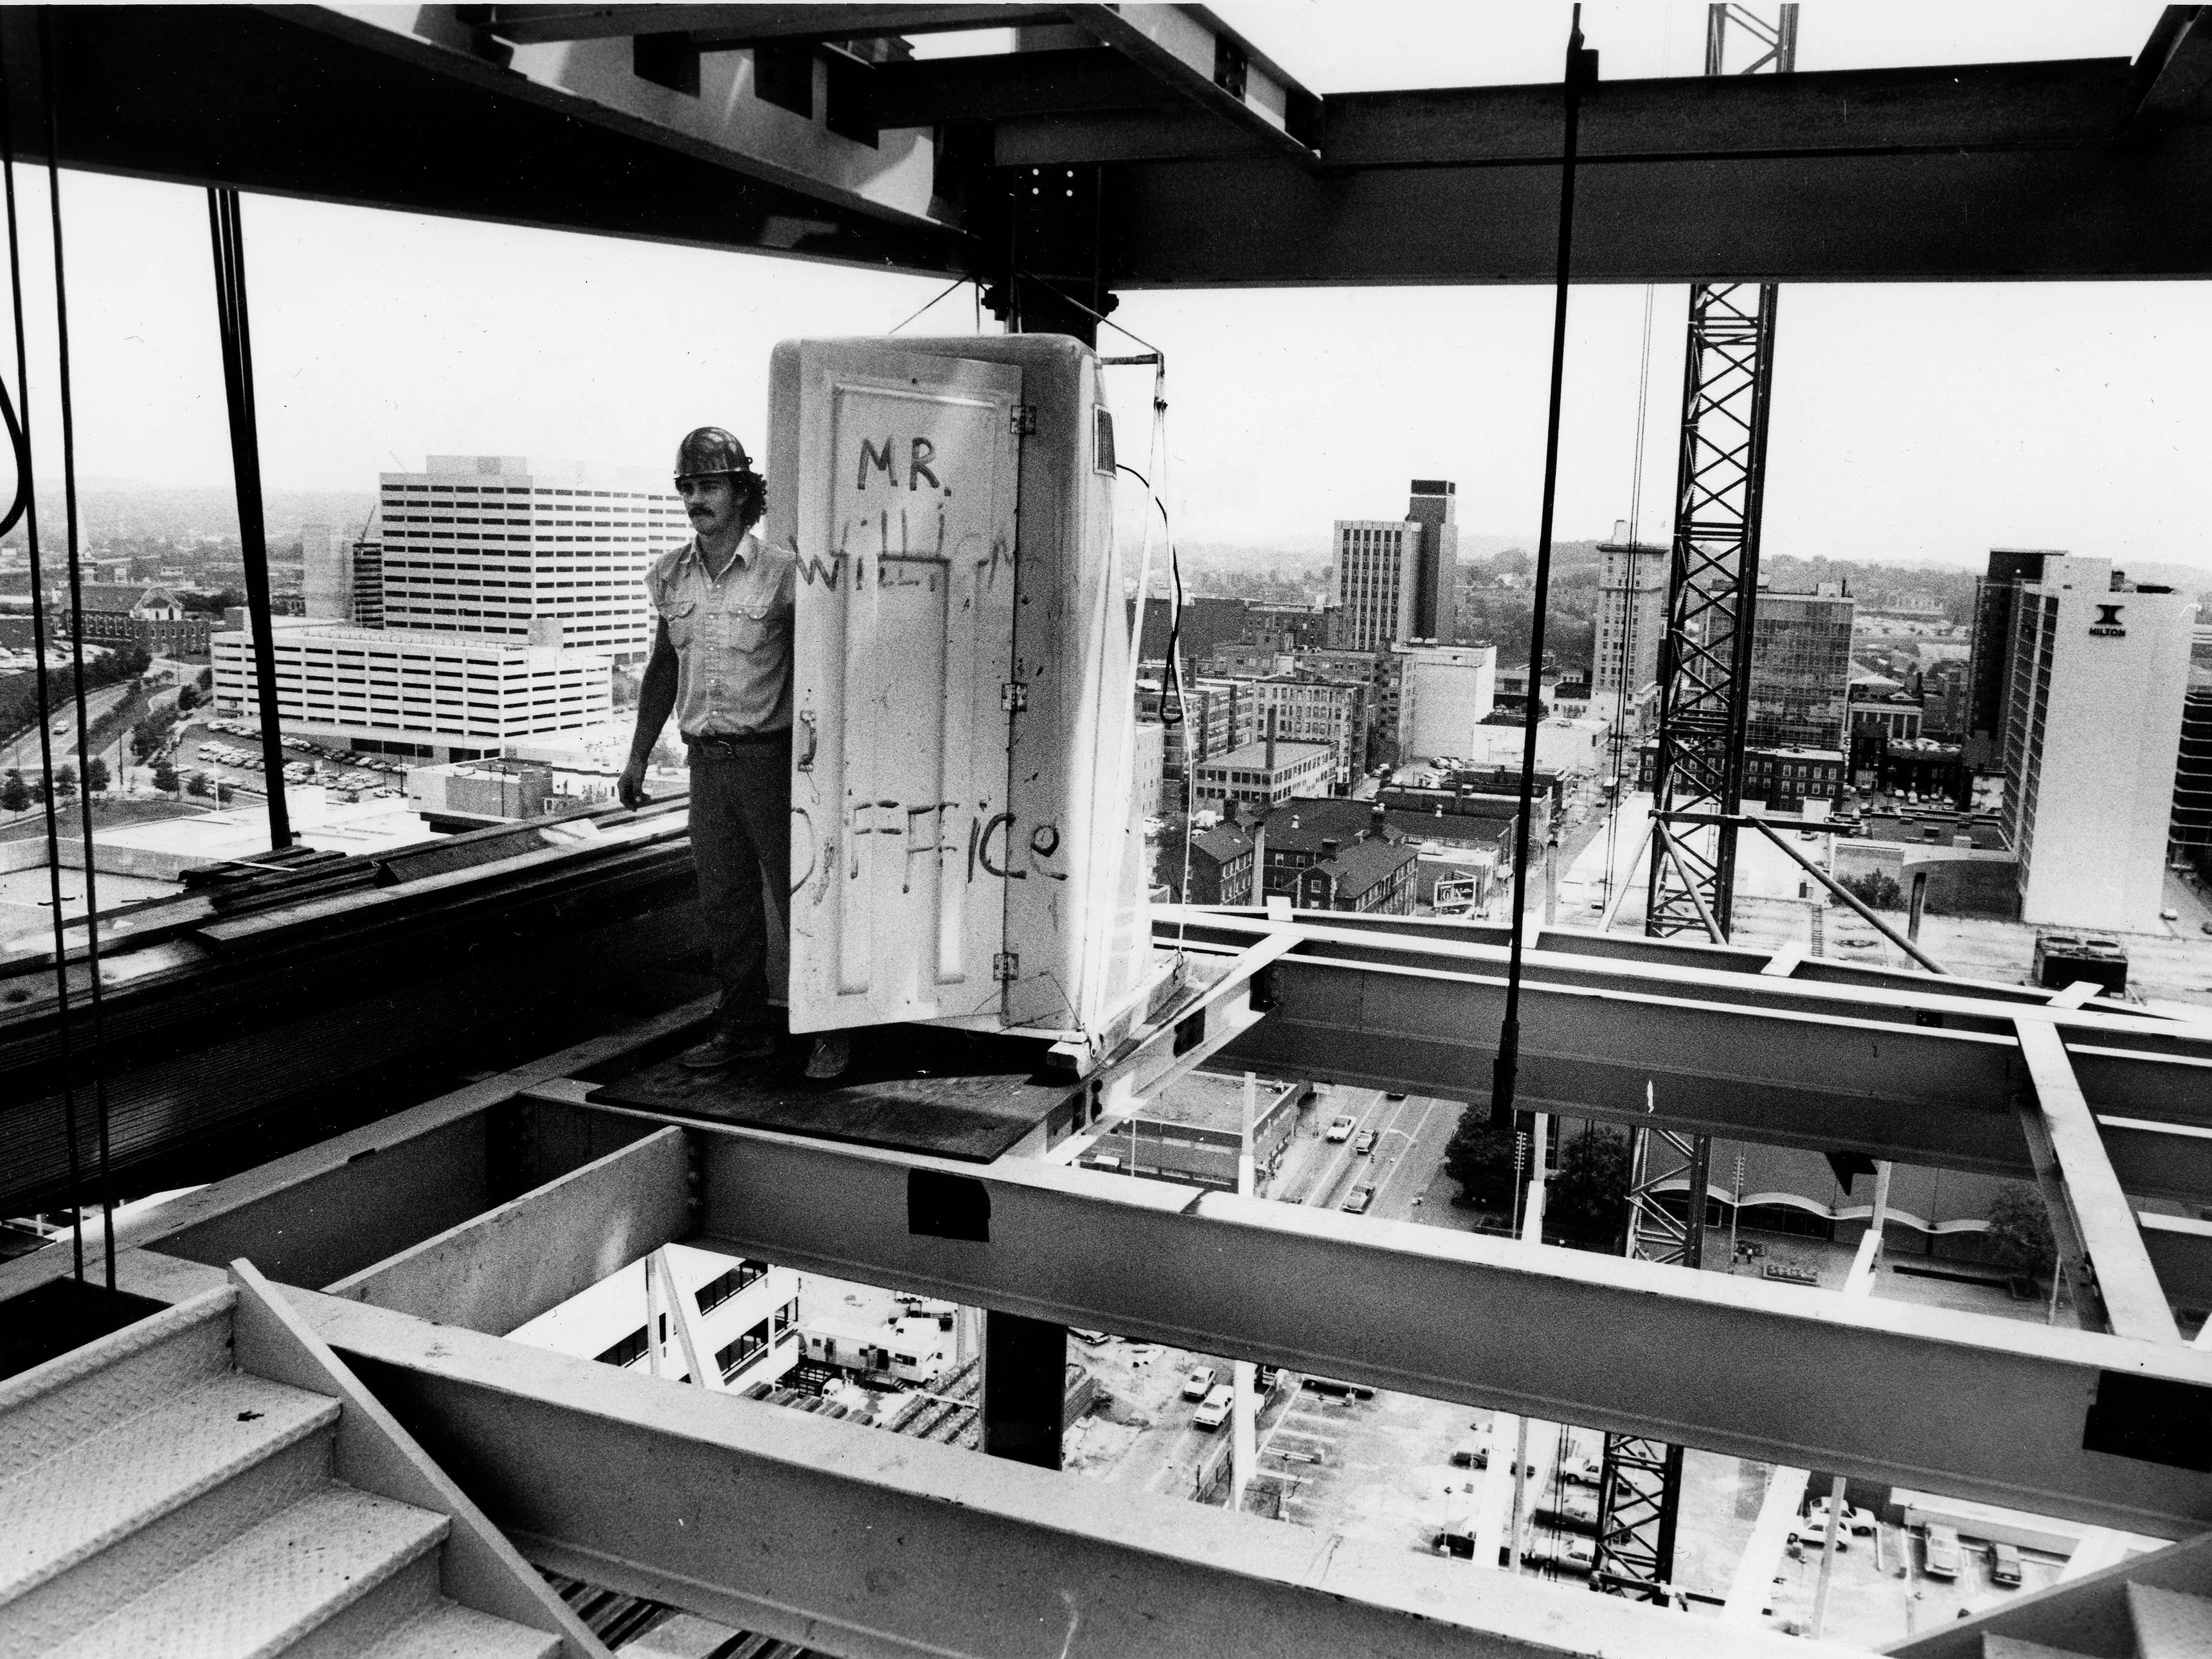 Buddy Beets, of Knoxville, comes out of a portable john 255 feet above ground on September 13, 1981.